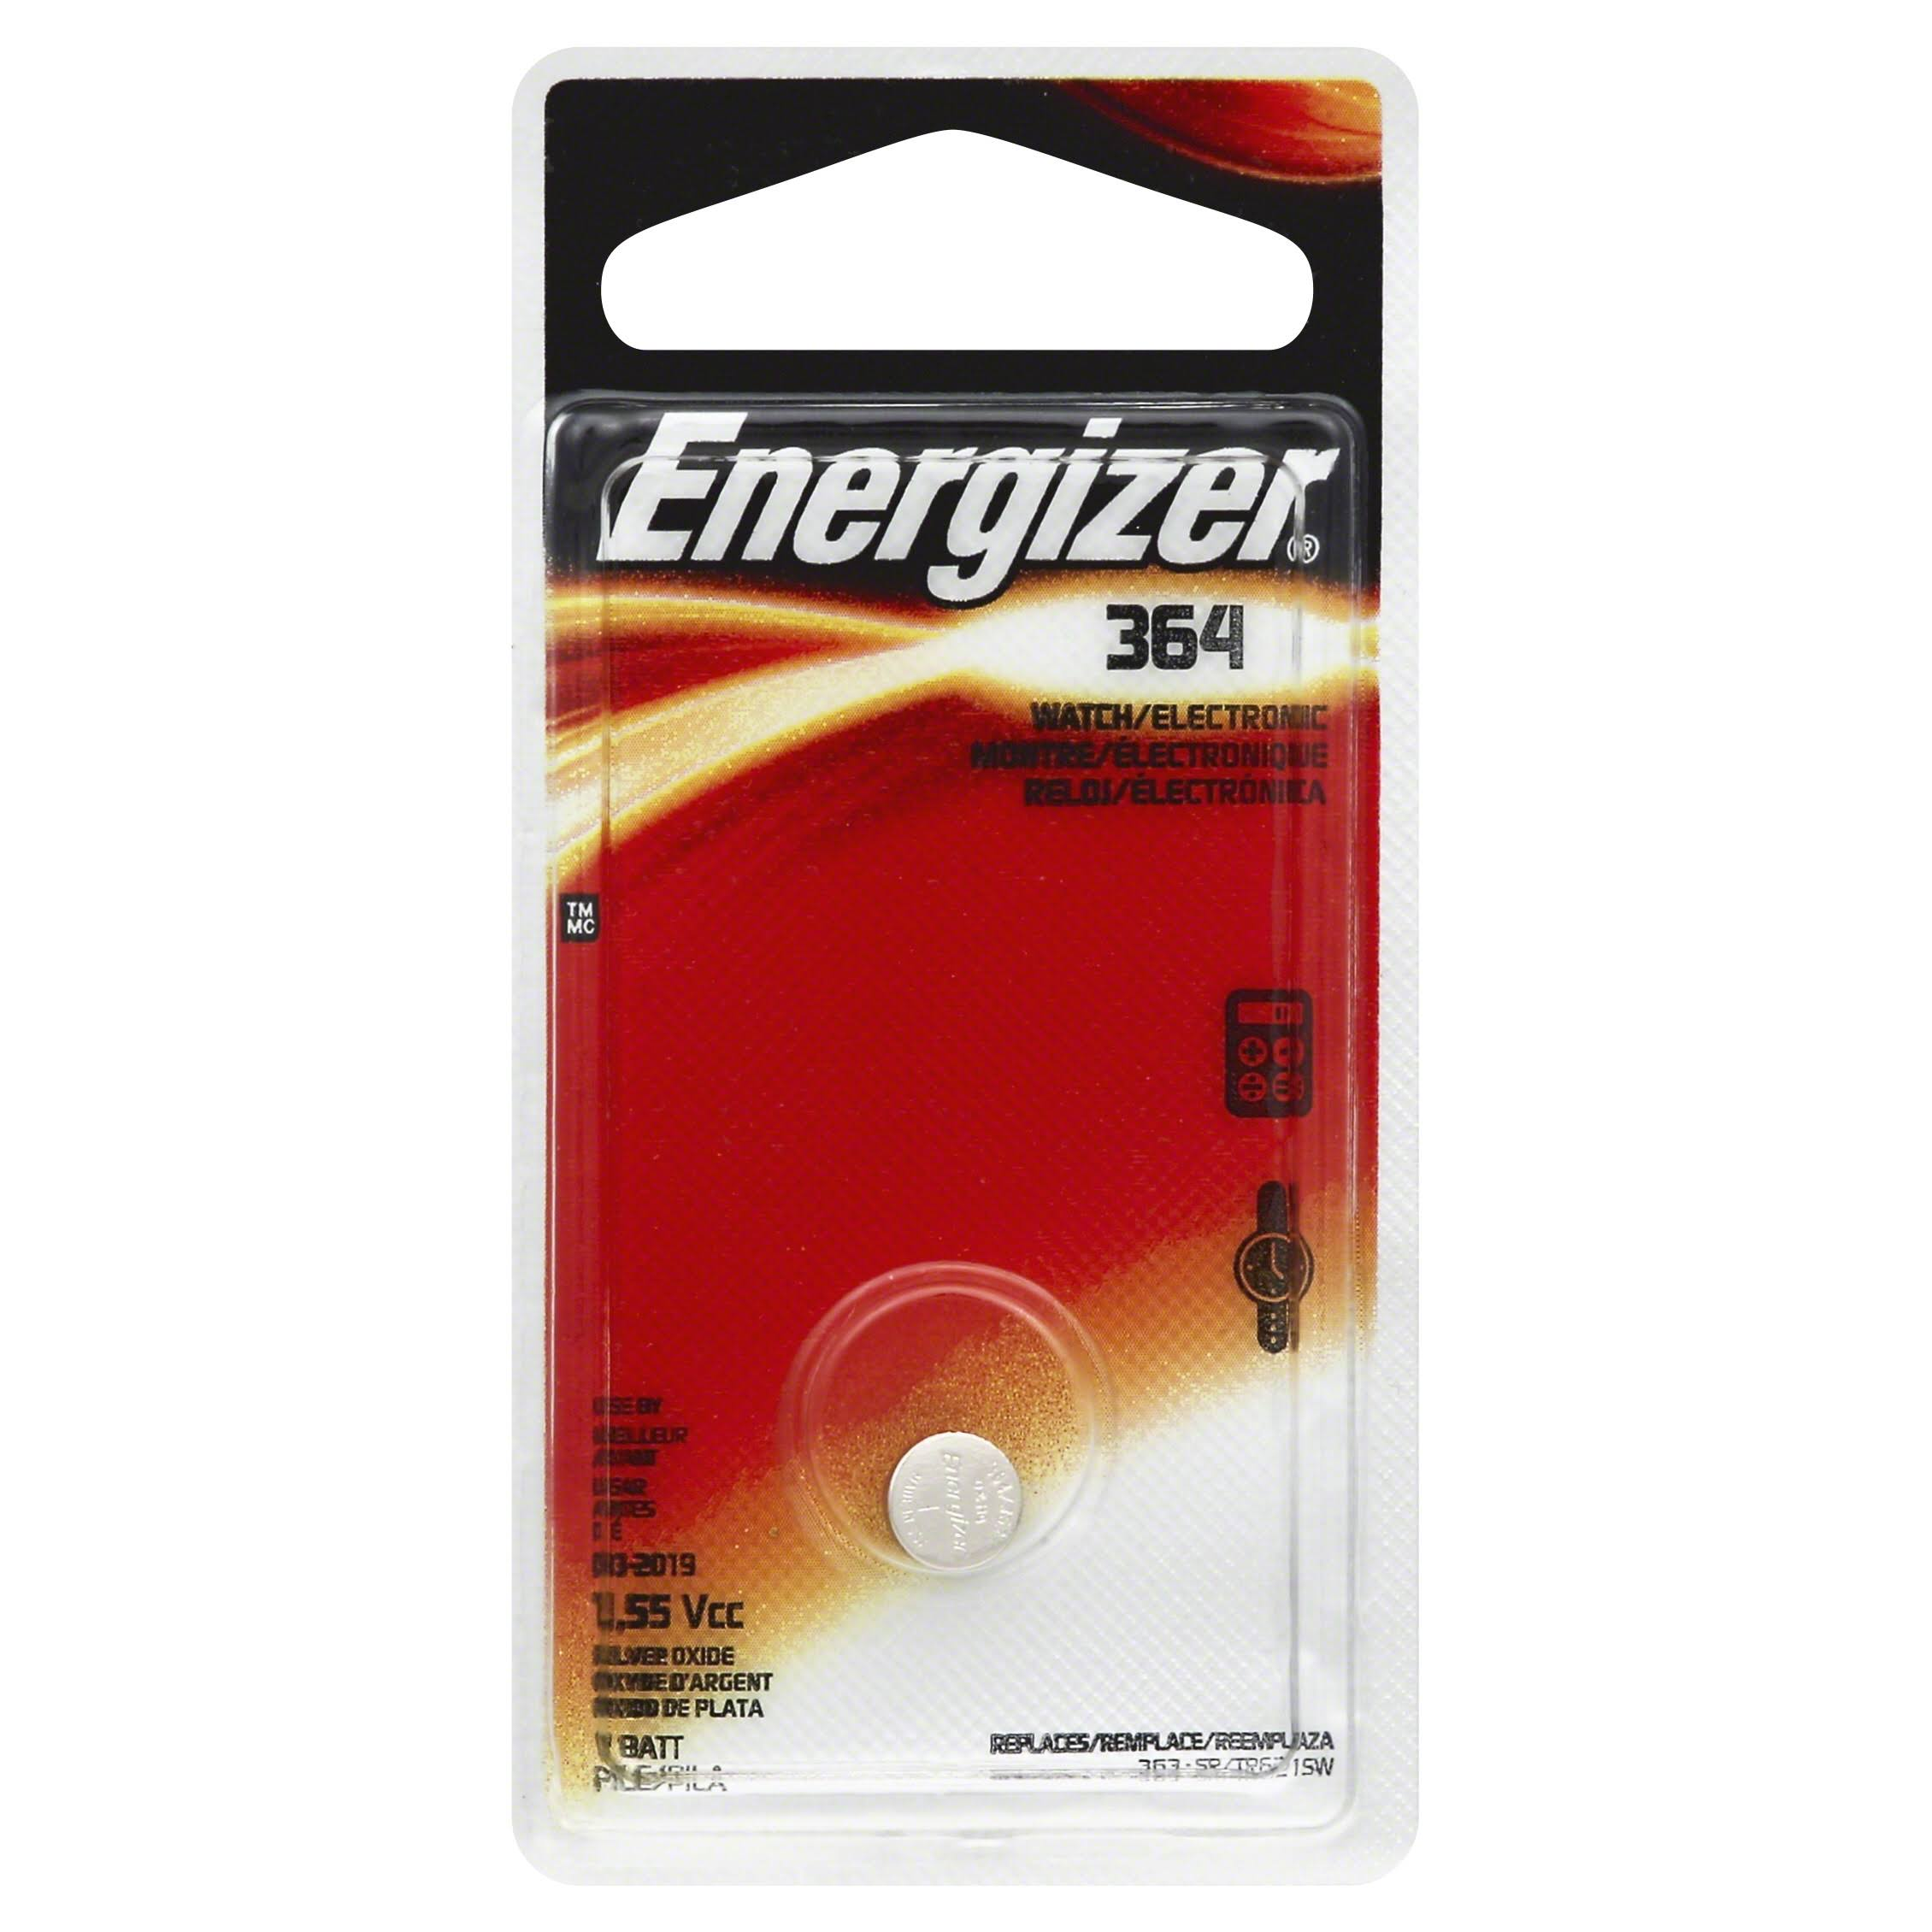 Energizer 364BPZ Zero Mercury Battery